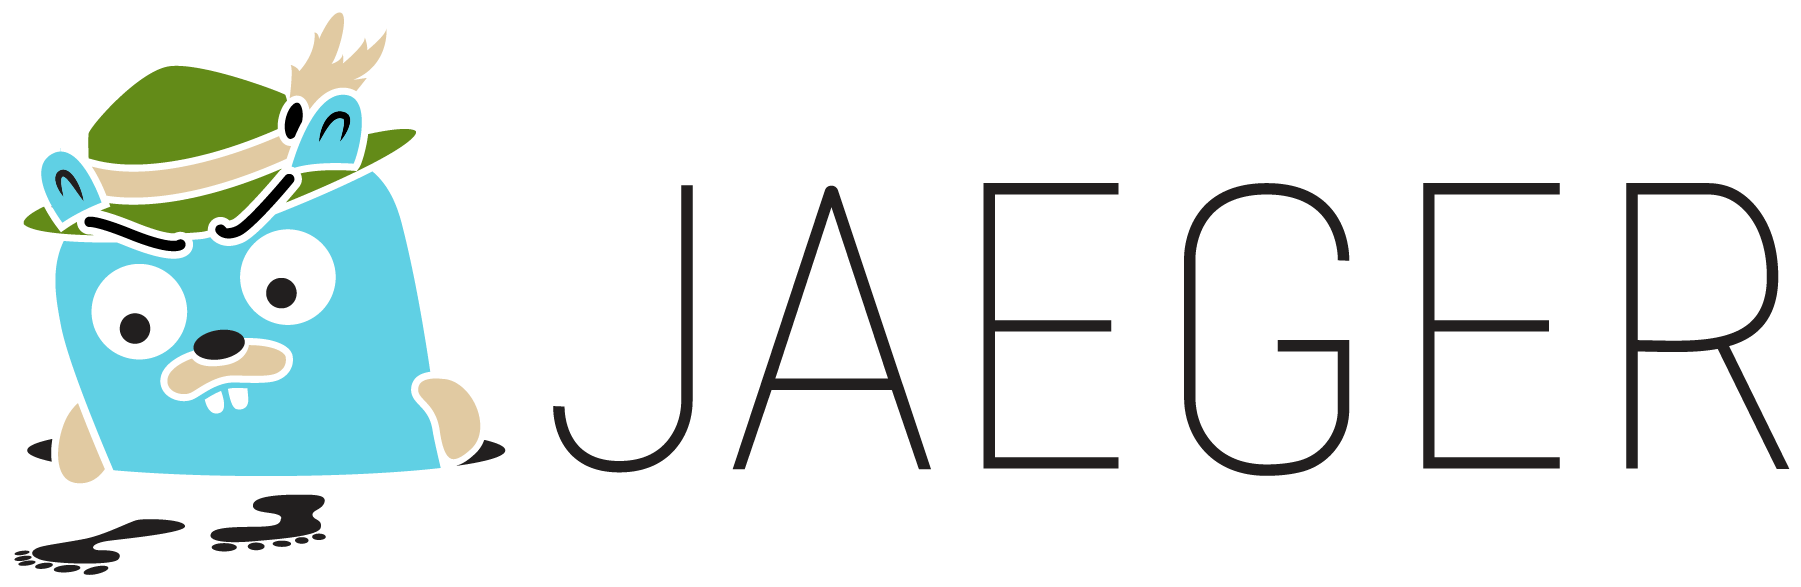 Jaeger project logo